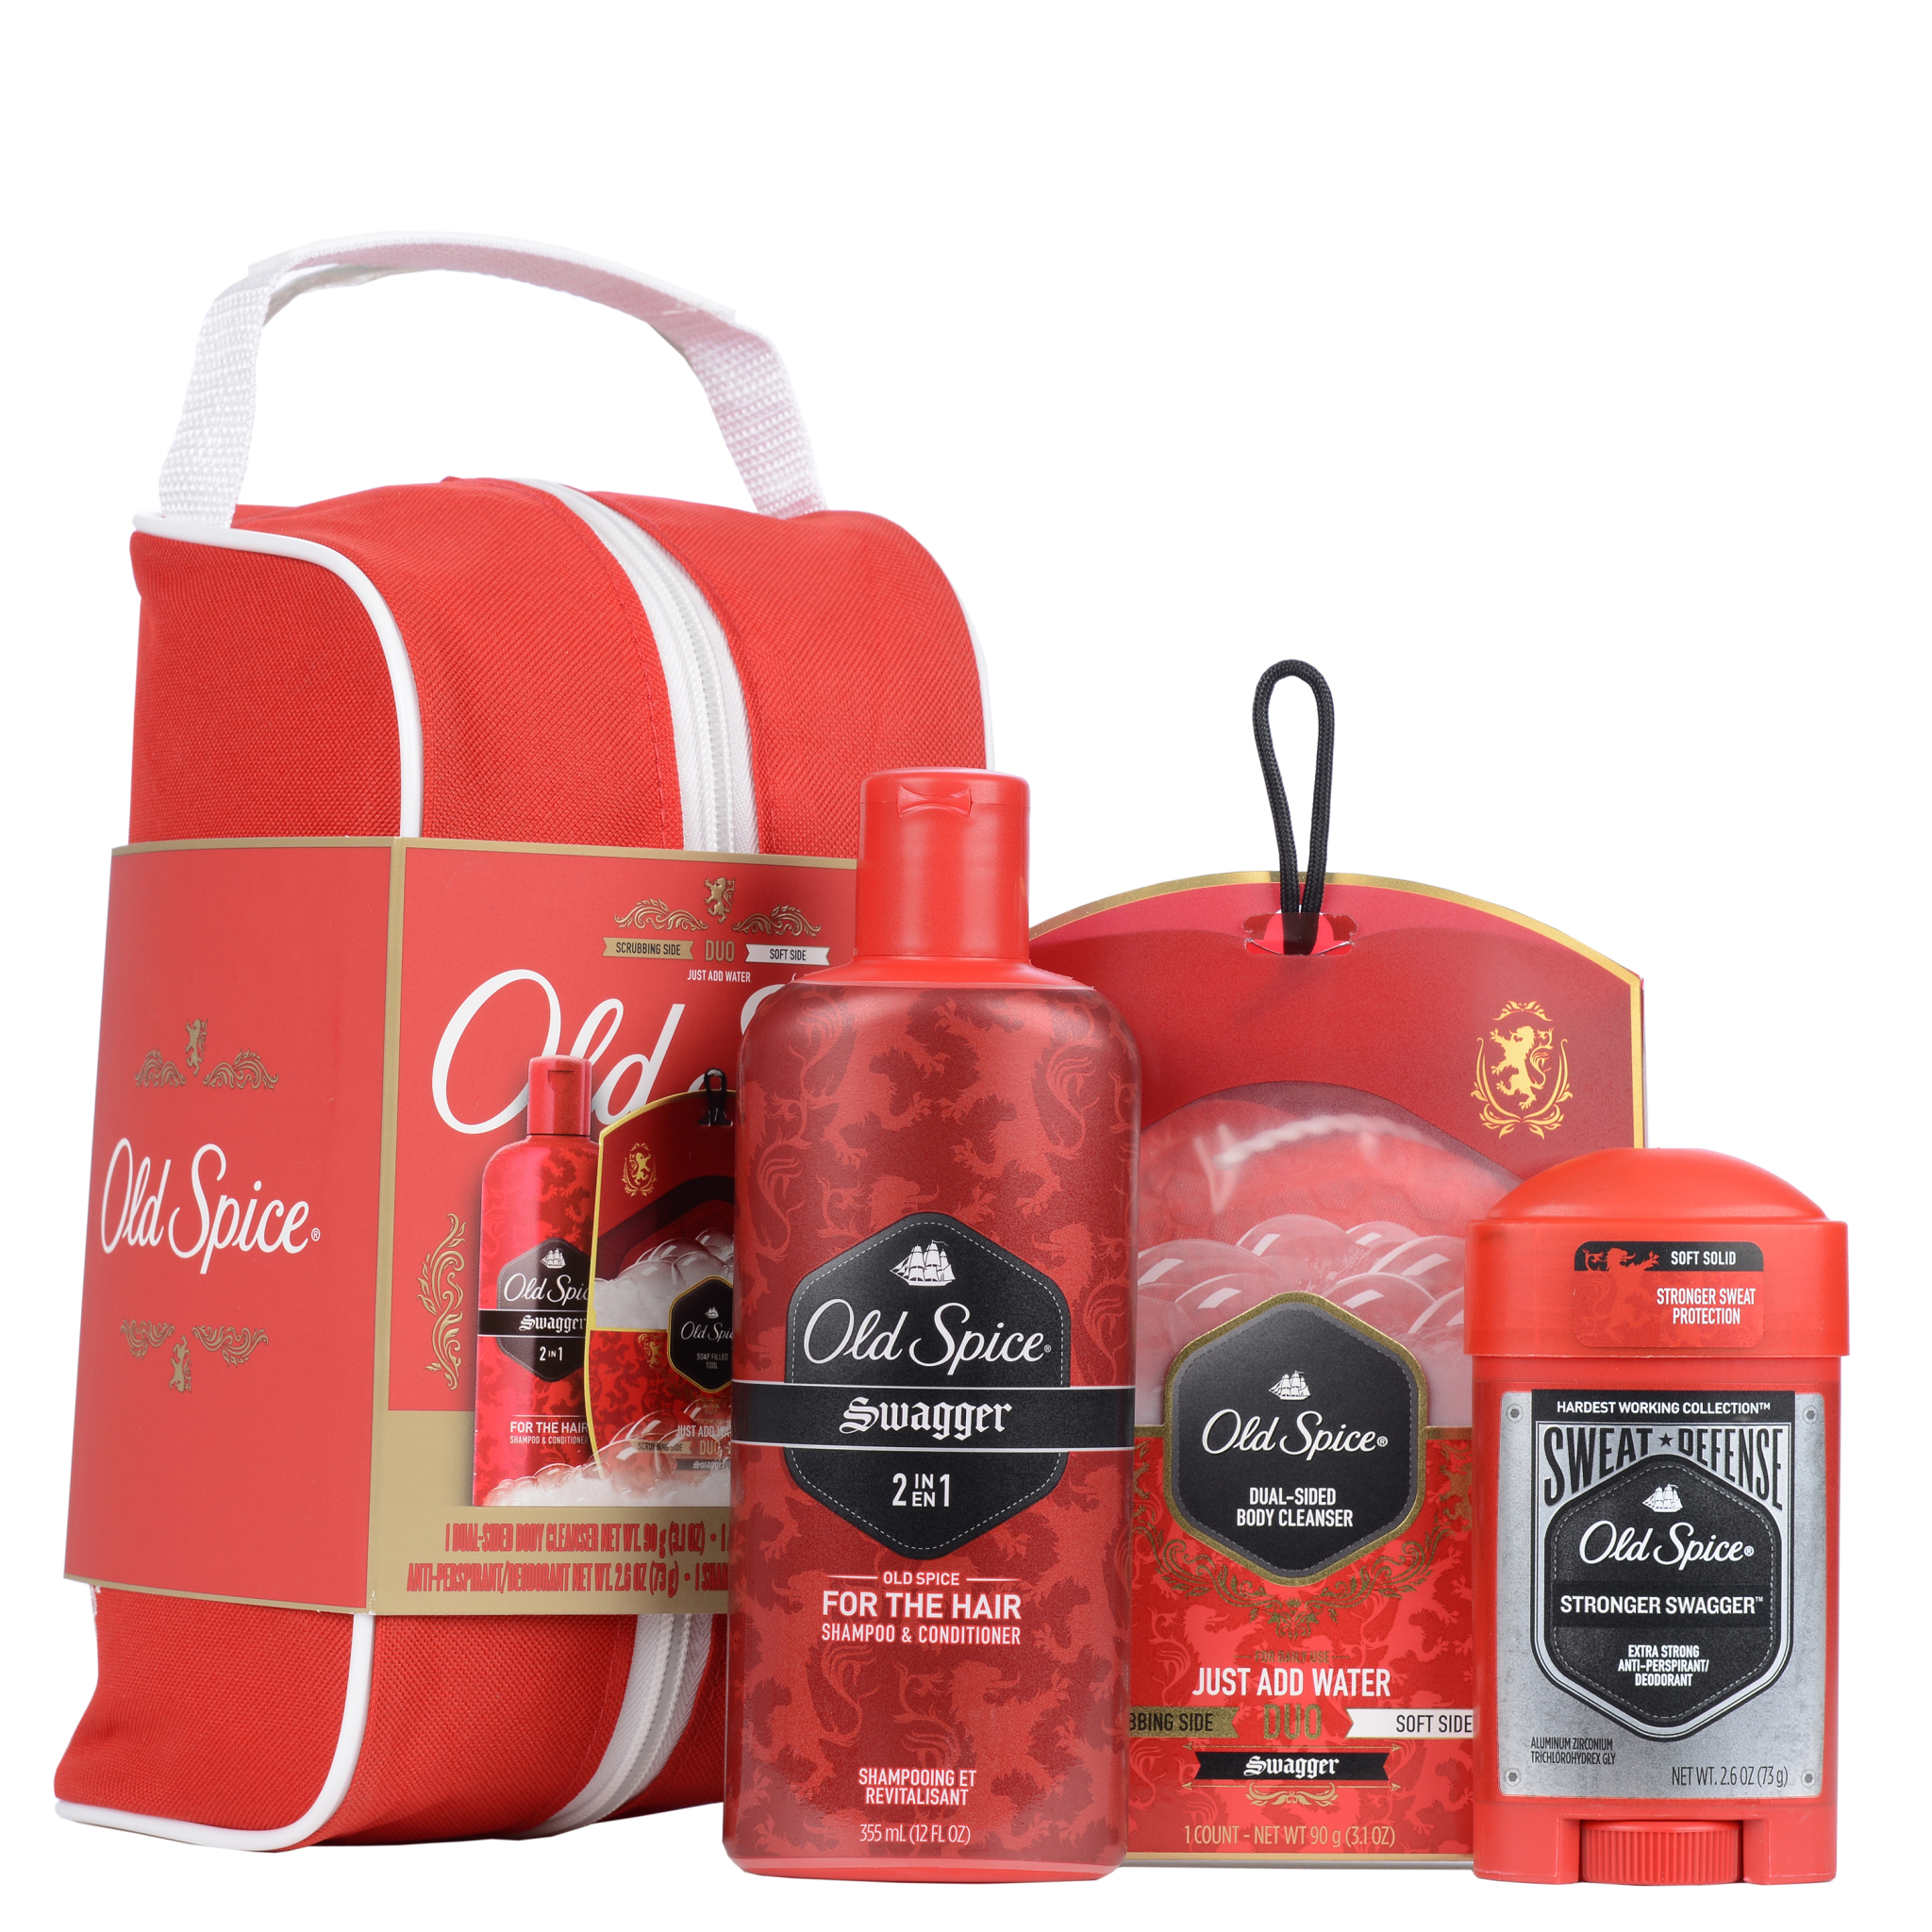 Old Spice Swagger Deodorant, Shampoo & Conditioner and Duo Cleanser Gift Pack - 4 Pc